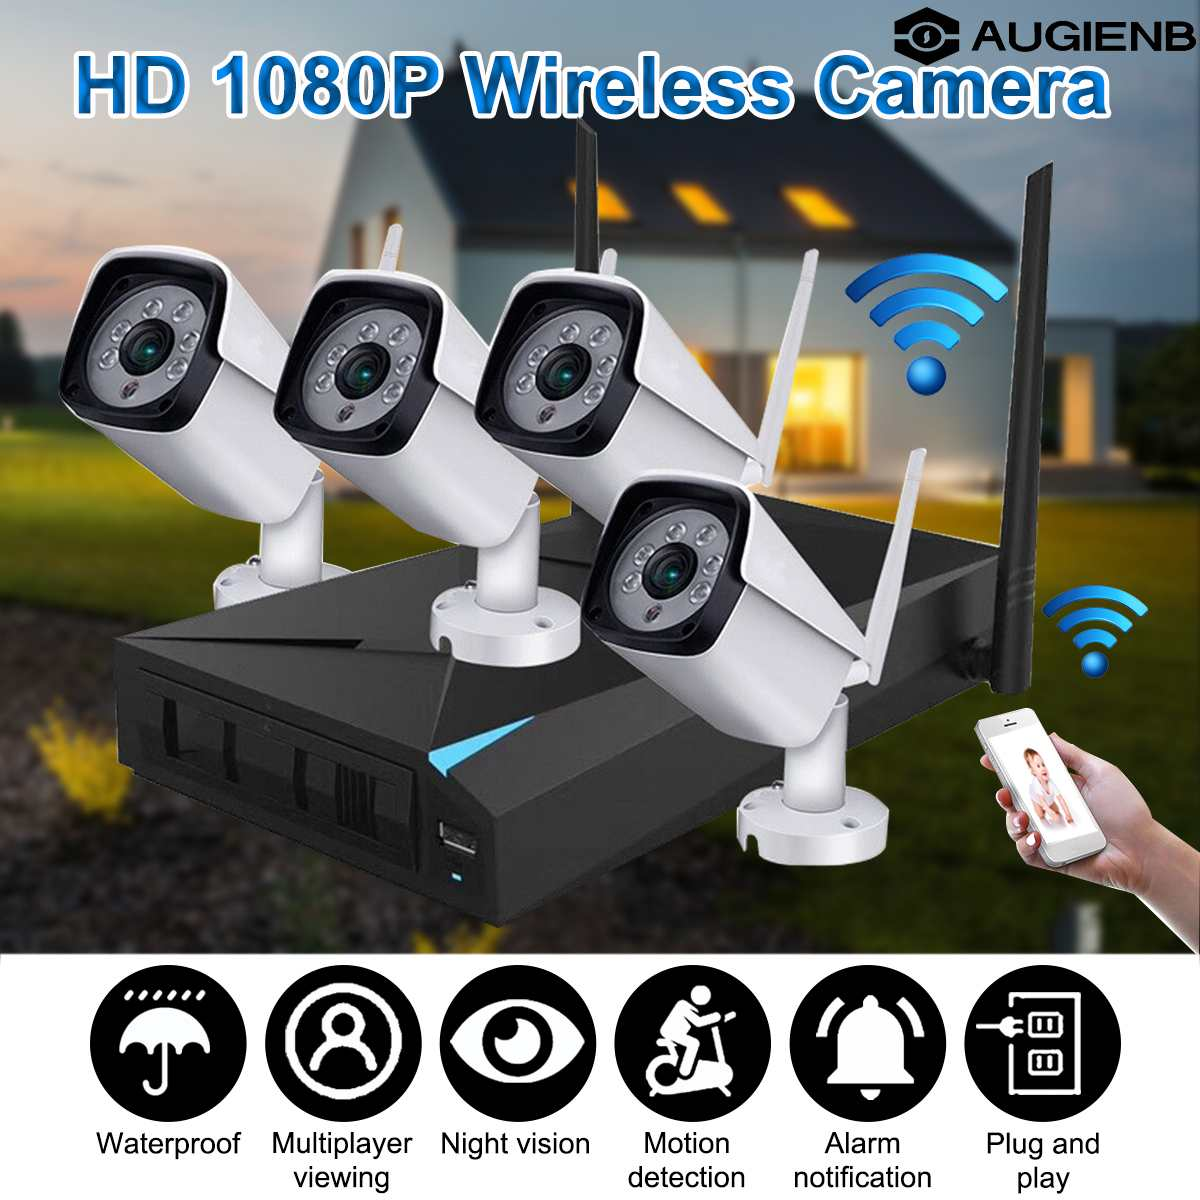 1080P Wireless Security Camera System, 4CH NVR WiFi IP Cameras, CCTV Video Surveillance System Kit Plug & Play, Motion Detection1080P Wireless Security Camera System, 4CH NVR WiFi IP Cameras, CCTV Video Surveillance System Kit Plug & Play, Motion Detection